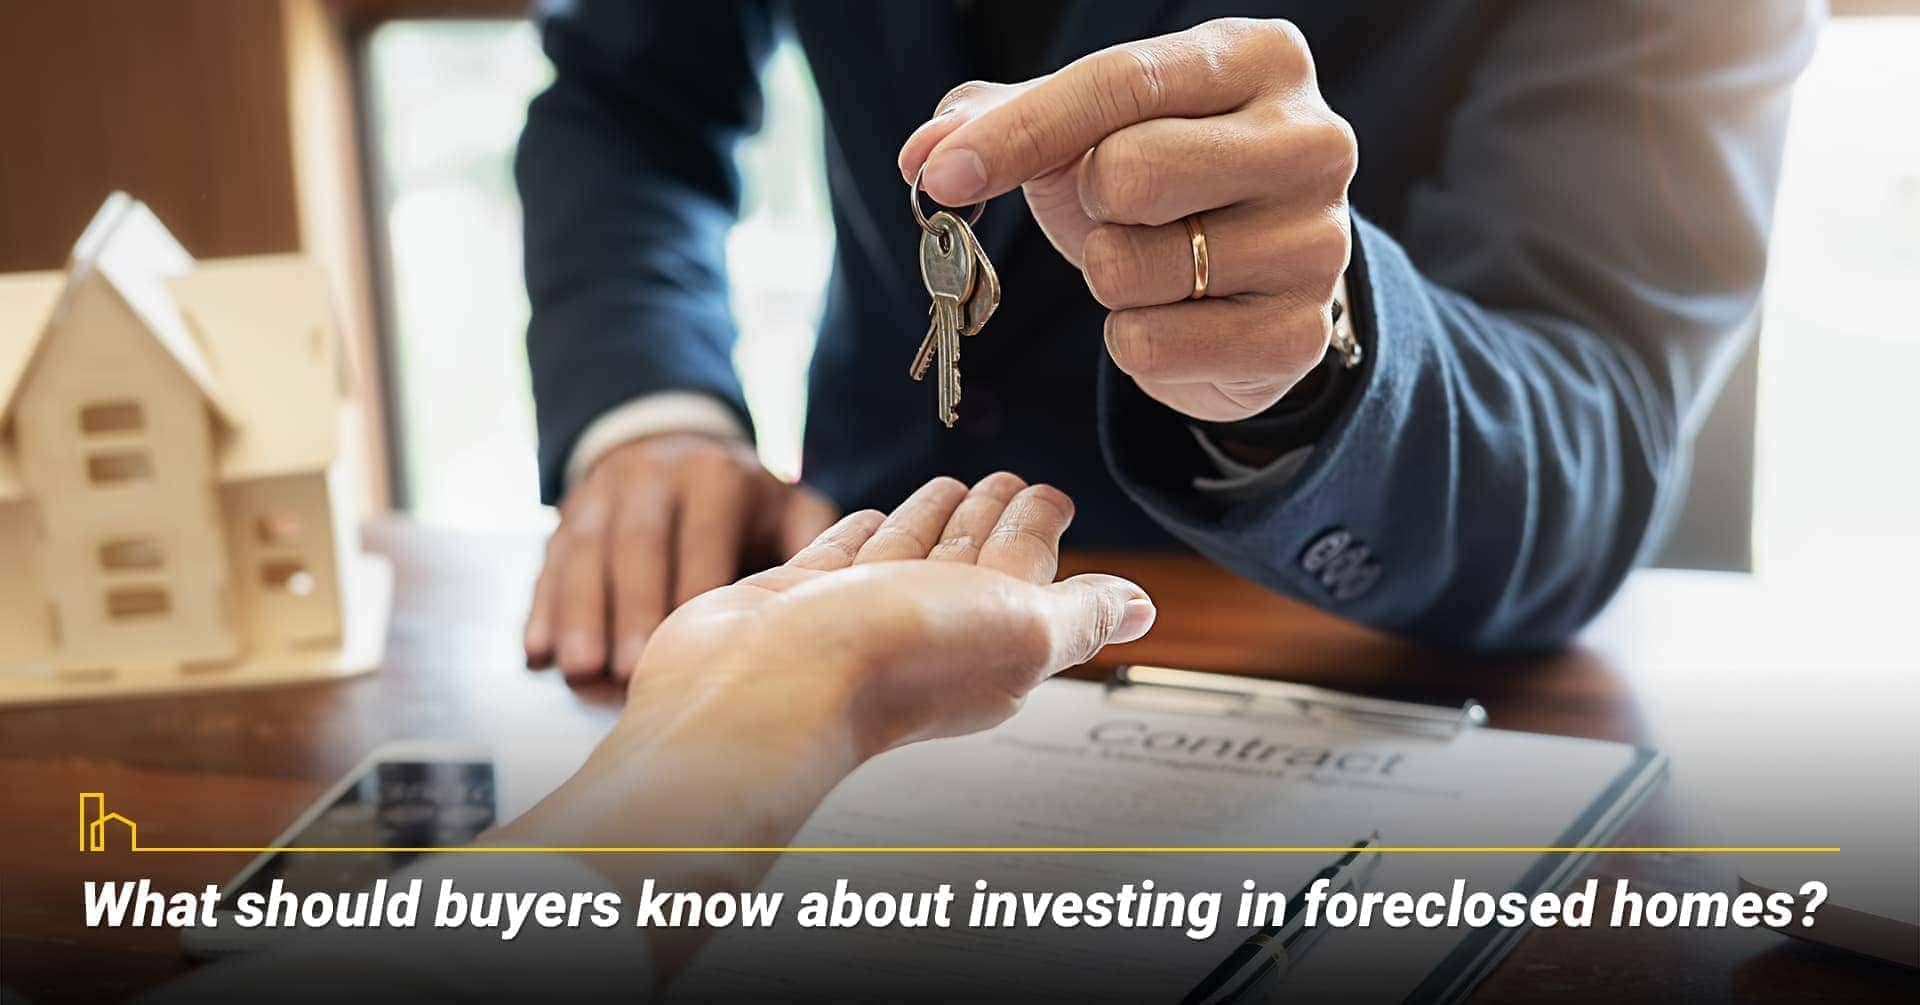 What should buyers know about investing in foreclosed homes? Things to consider when buying a foreclosed home